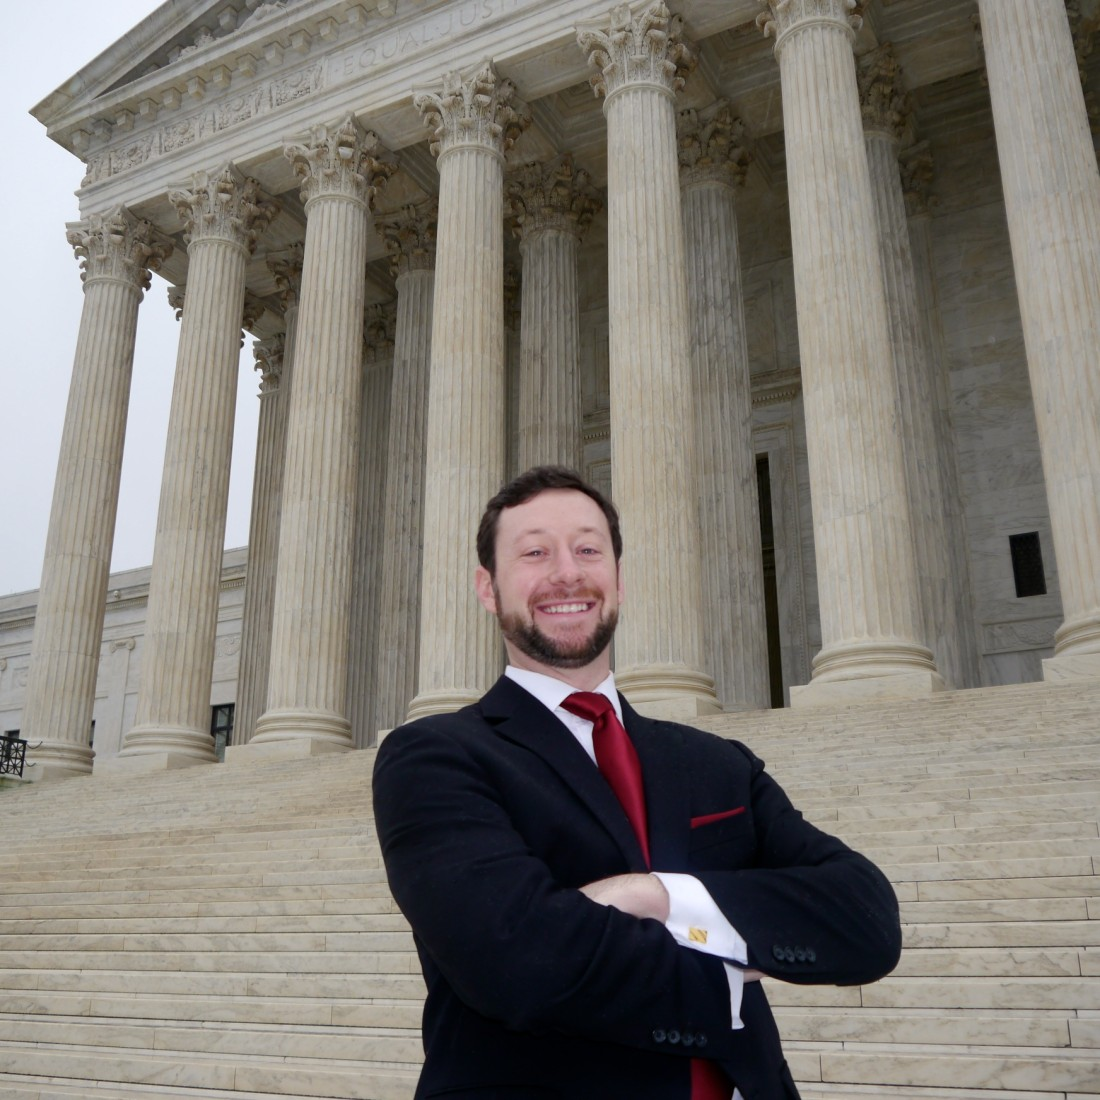 Patrick Griffin, Cantor Colburn, in front of the U.S. Supreme Court Building